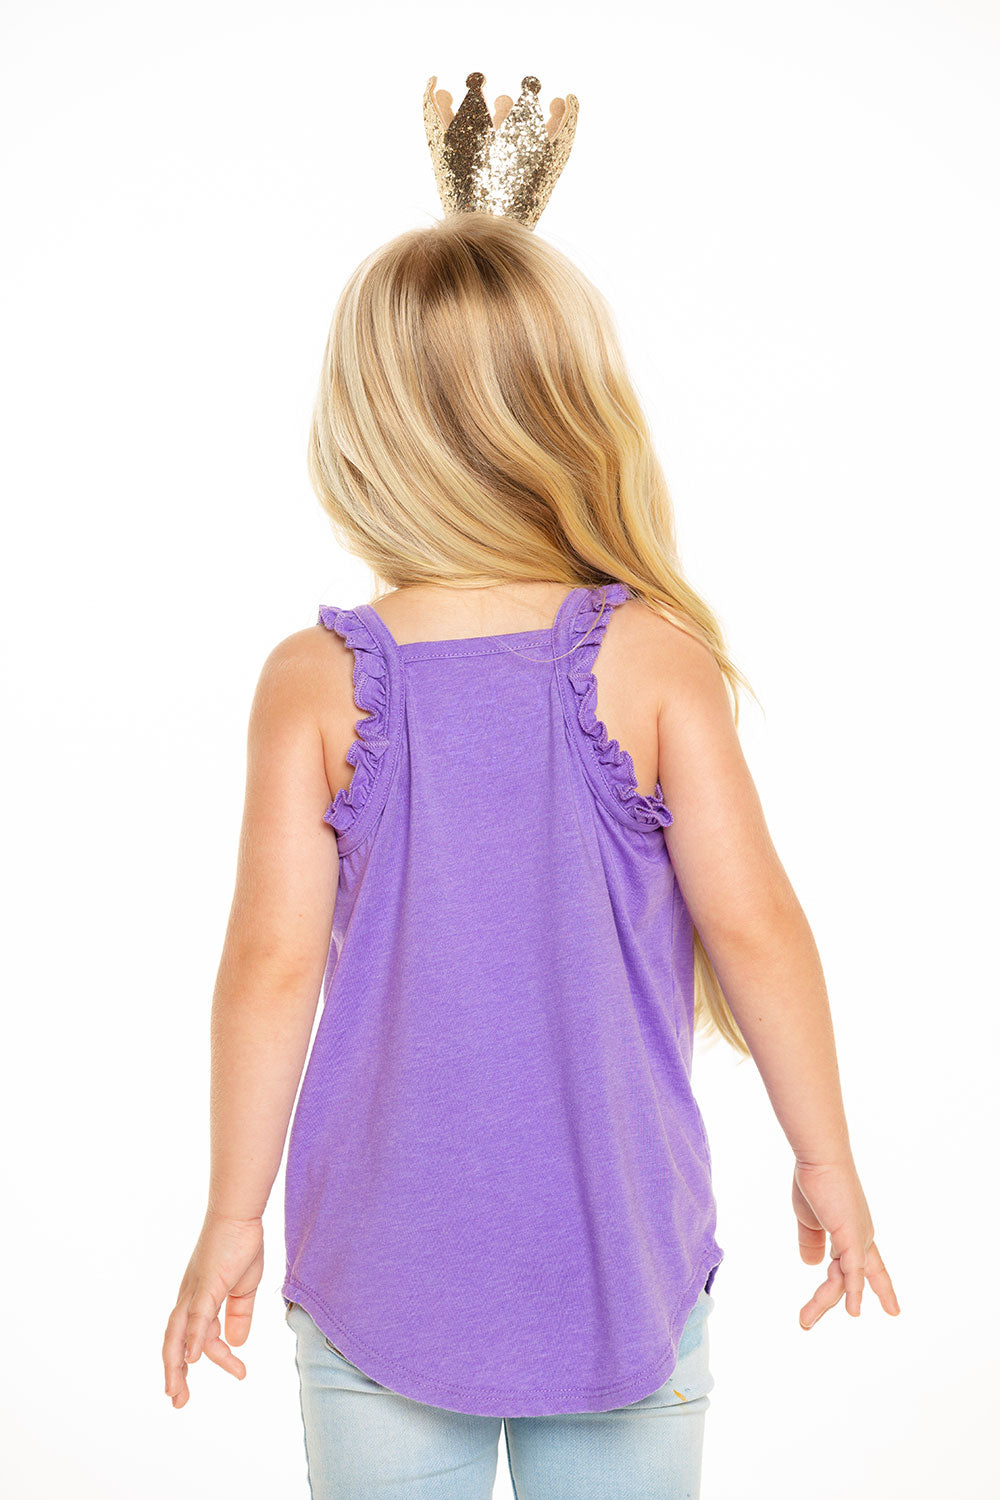 Recycled Vintage Jersey Ruffle Racerback Tank in Electric Purple GIRLS - chaserbrand